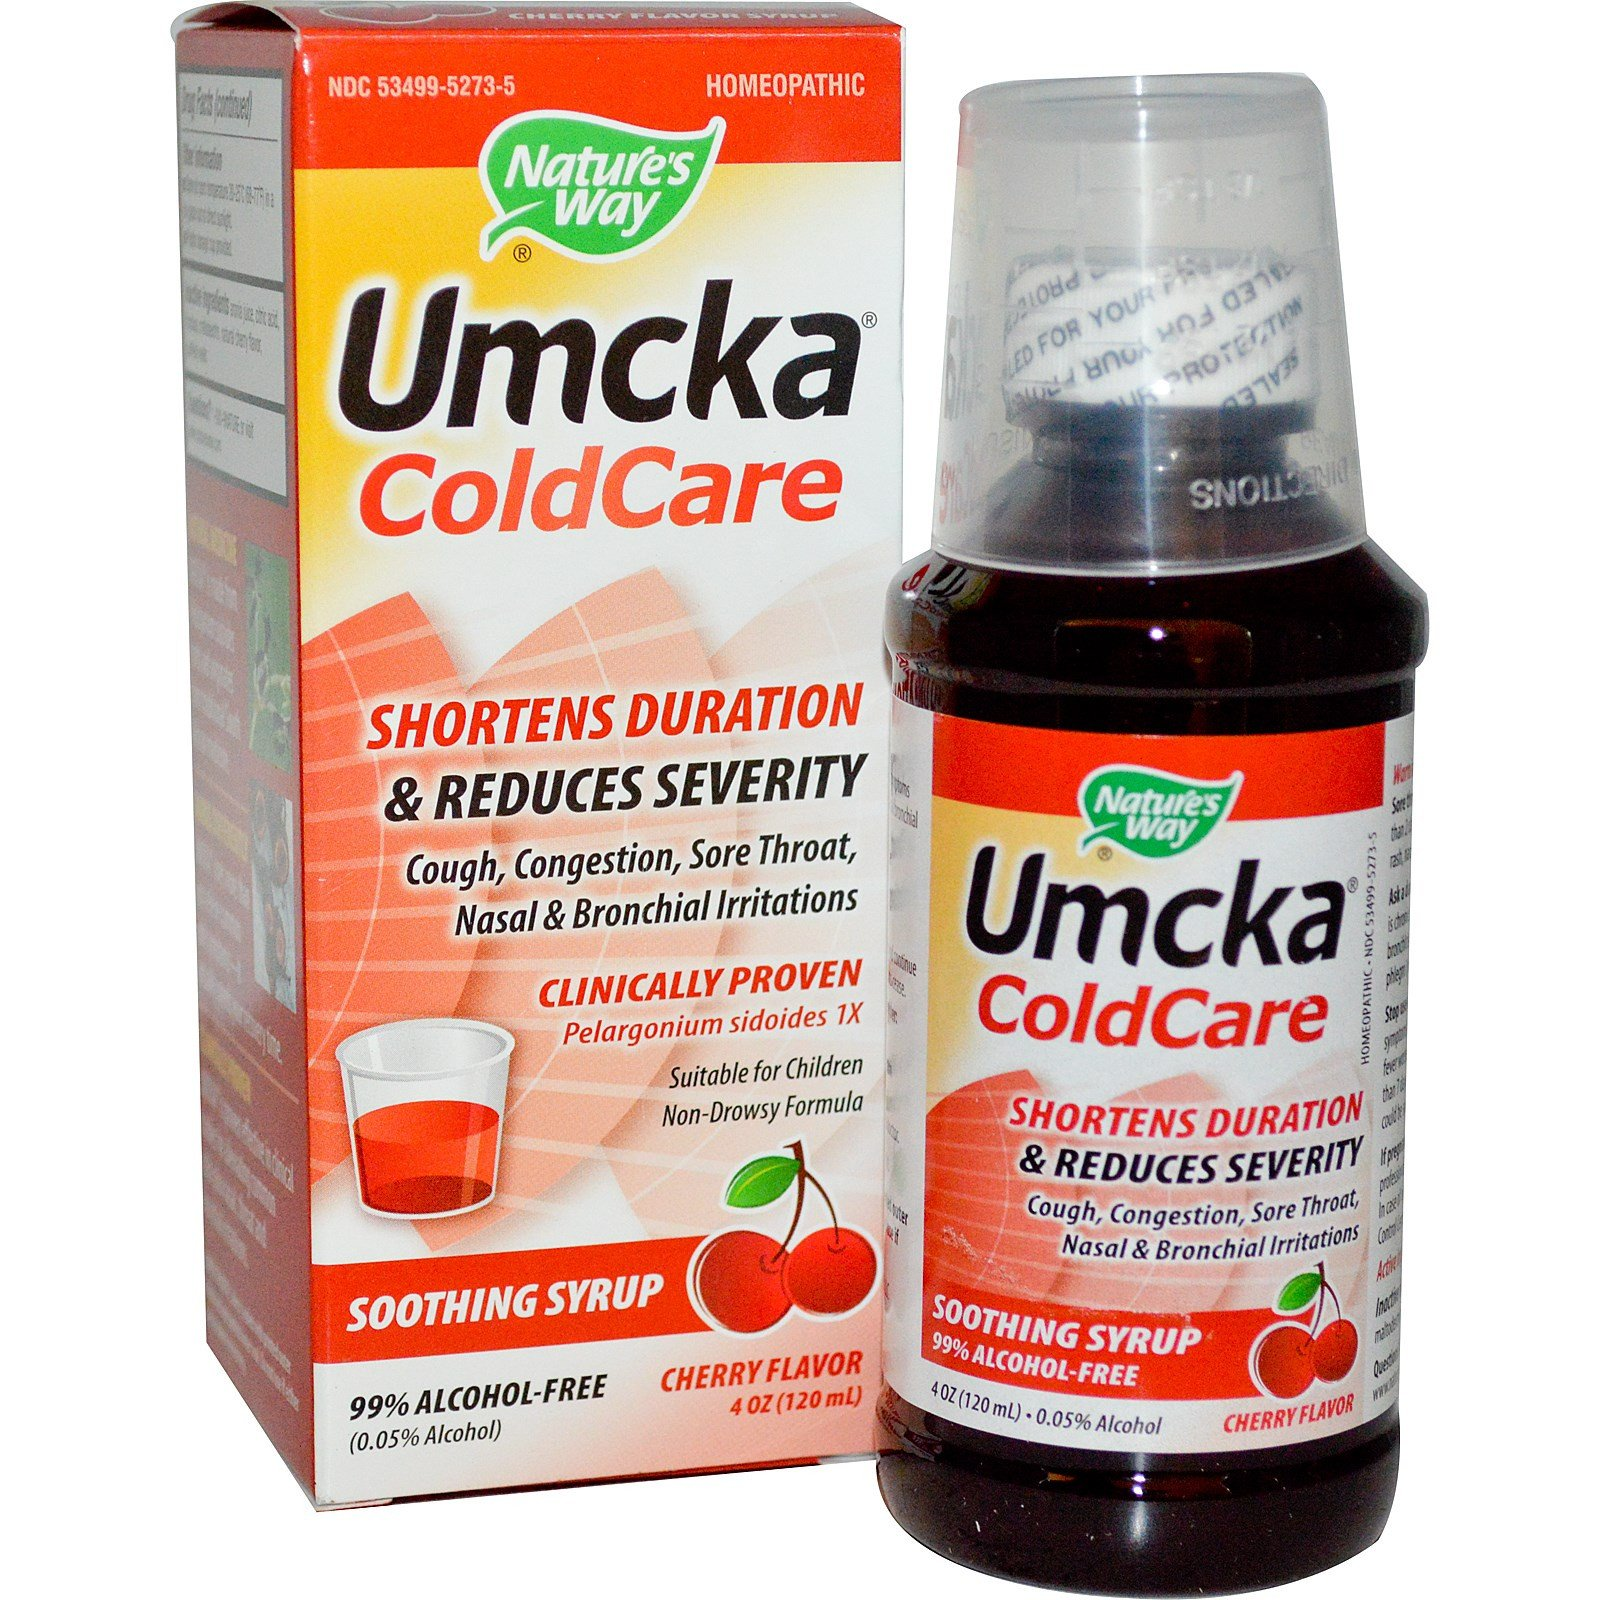 Nature's Way Umcka ColdCare - Cherry Flavor, 120 ml